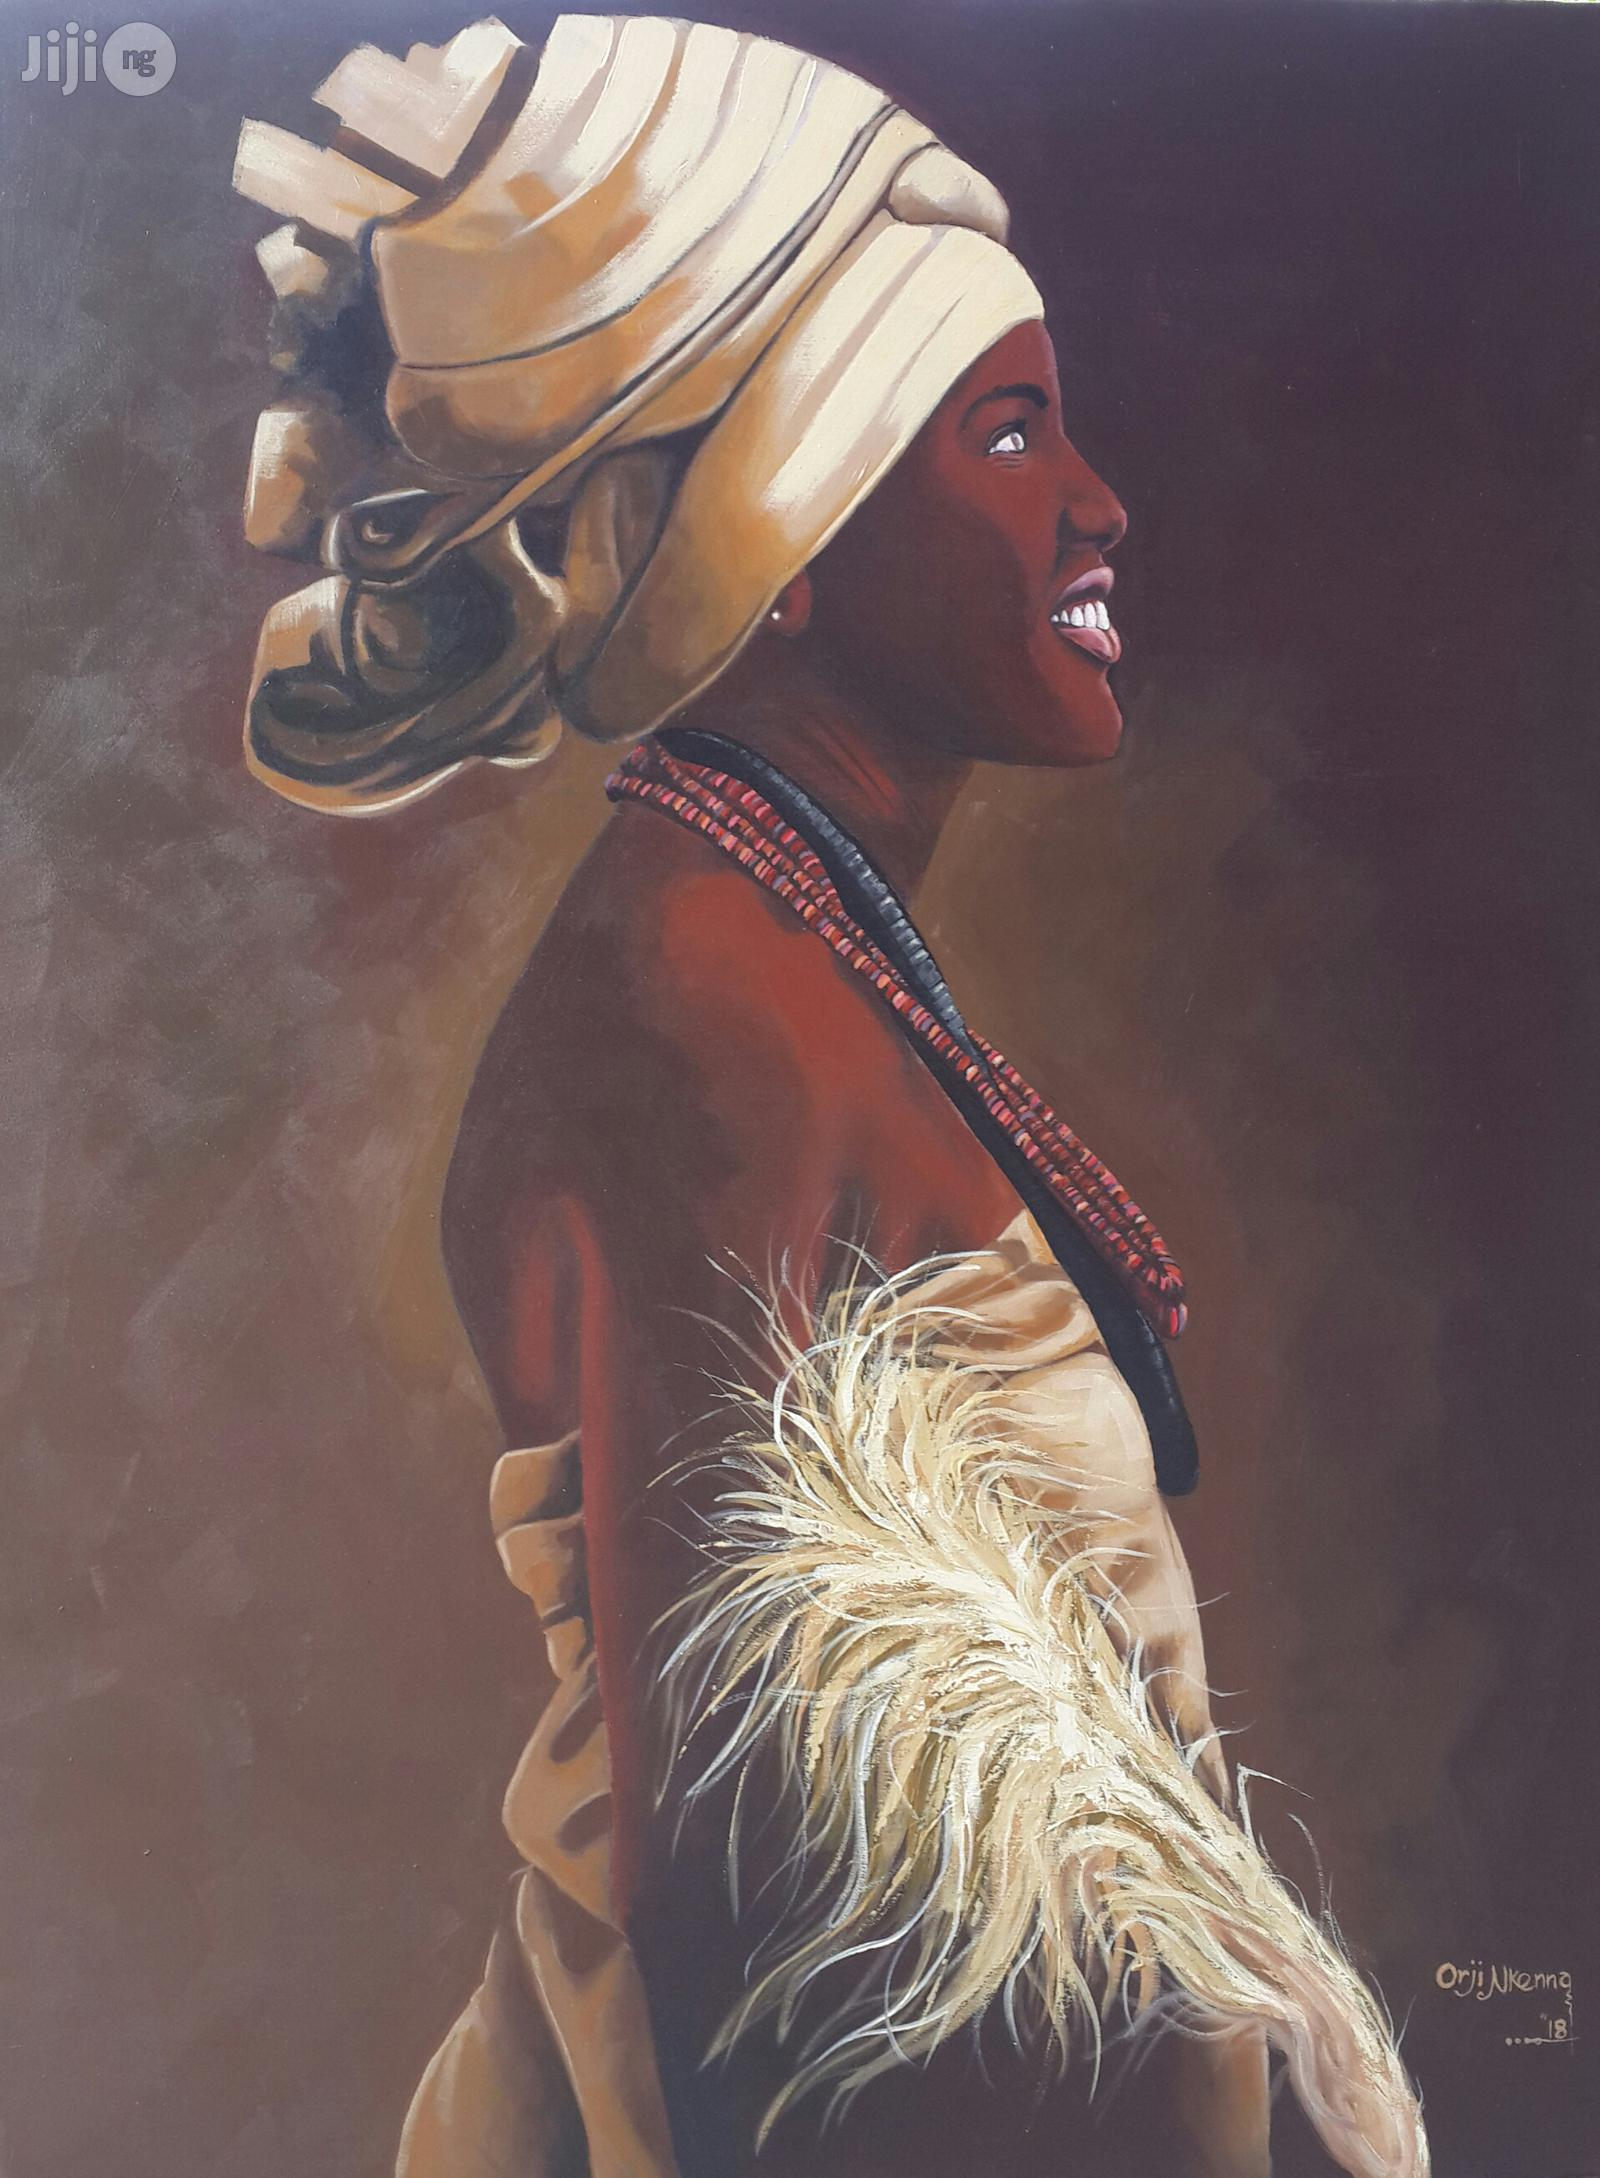 Canvas Art Paintings | Arts & Crafts for sale in Onitsha, Anambra State, Nigeria